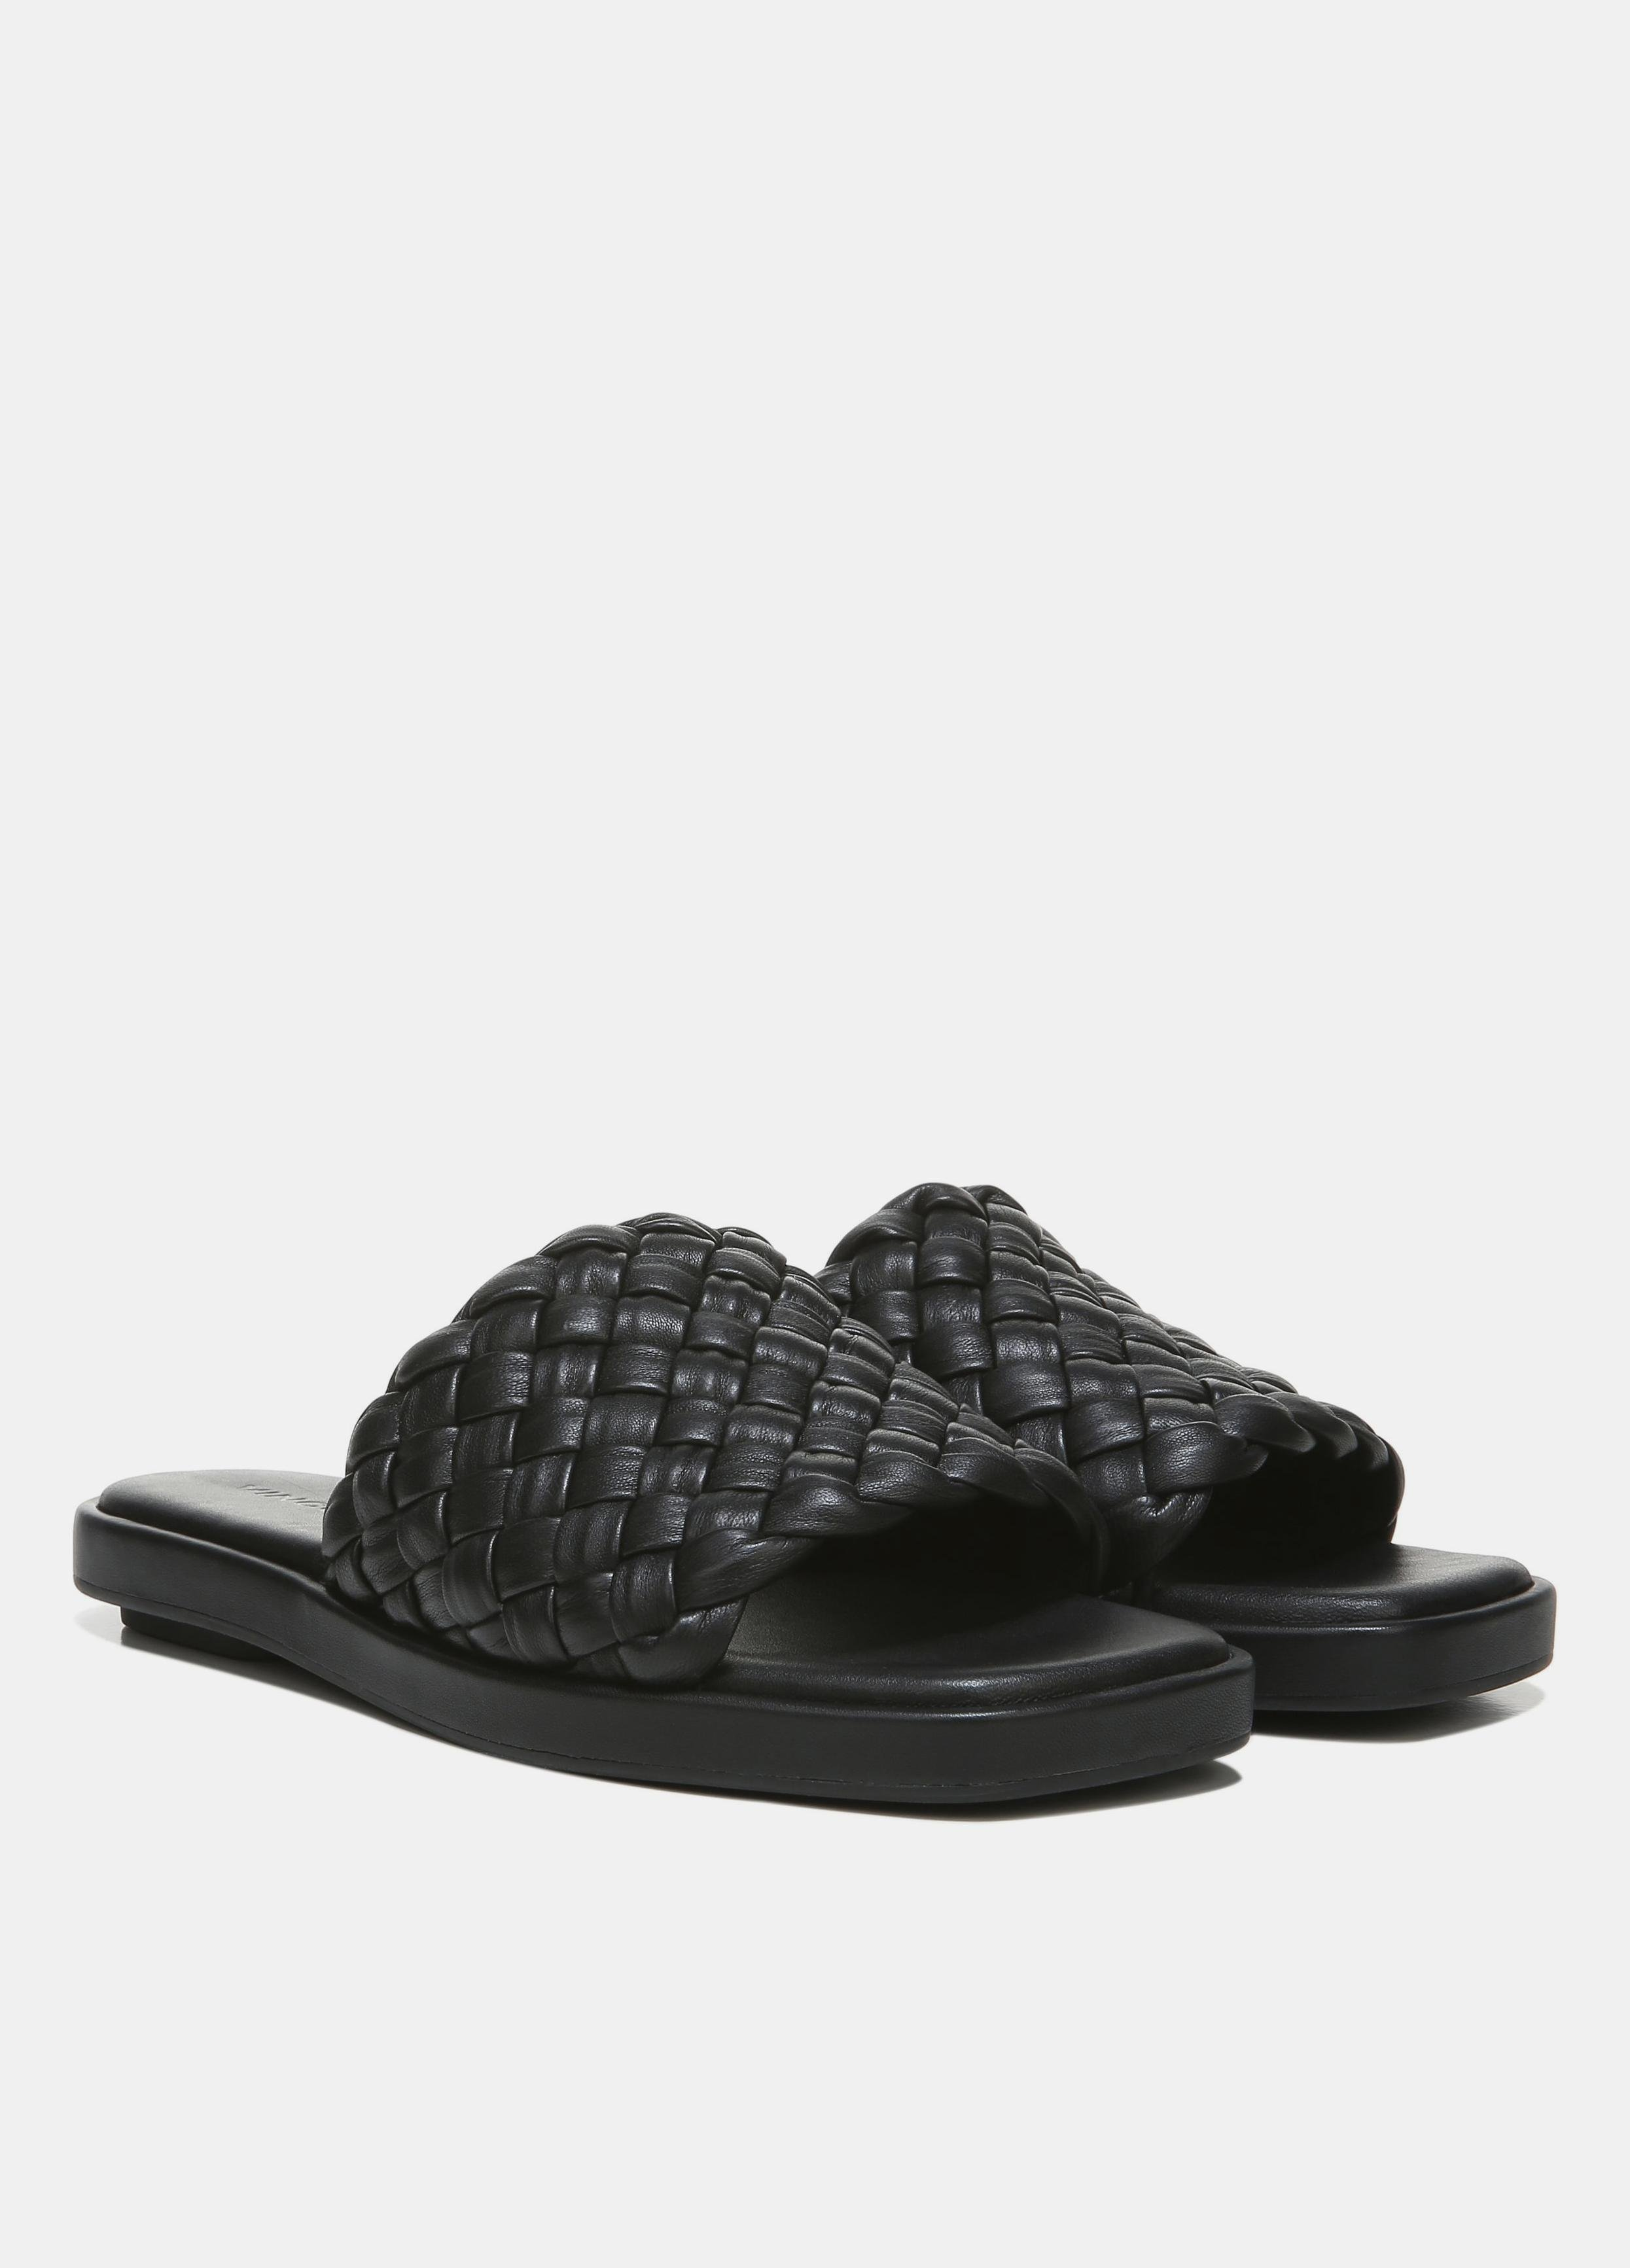 Rumi Woven Leather Slide 1